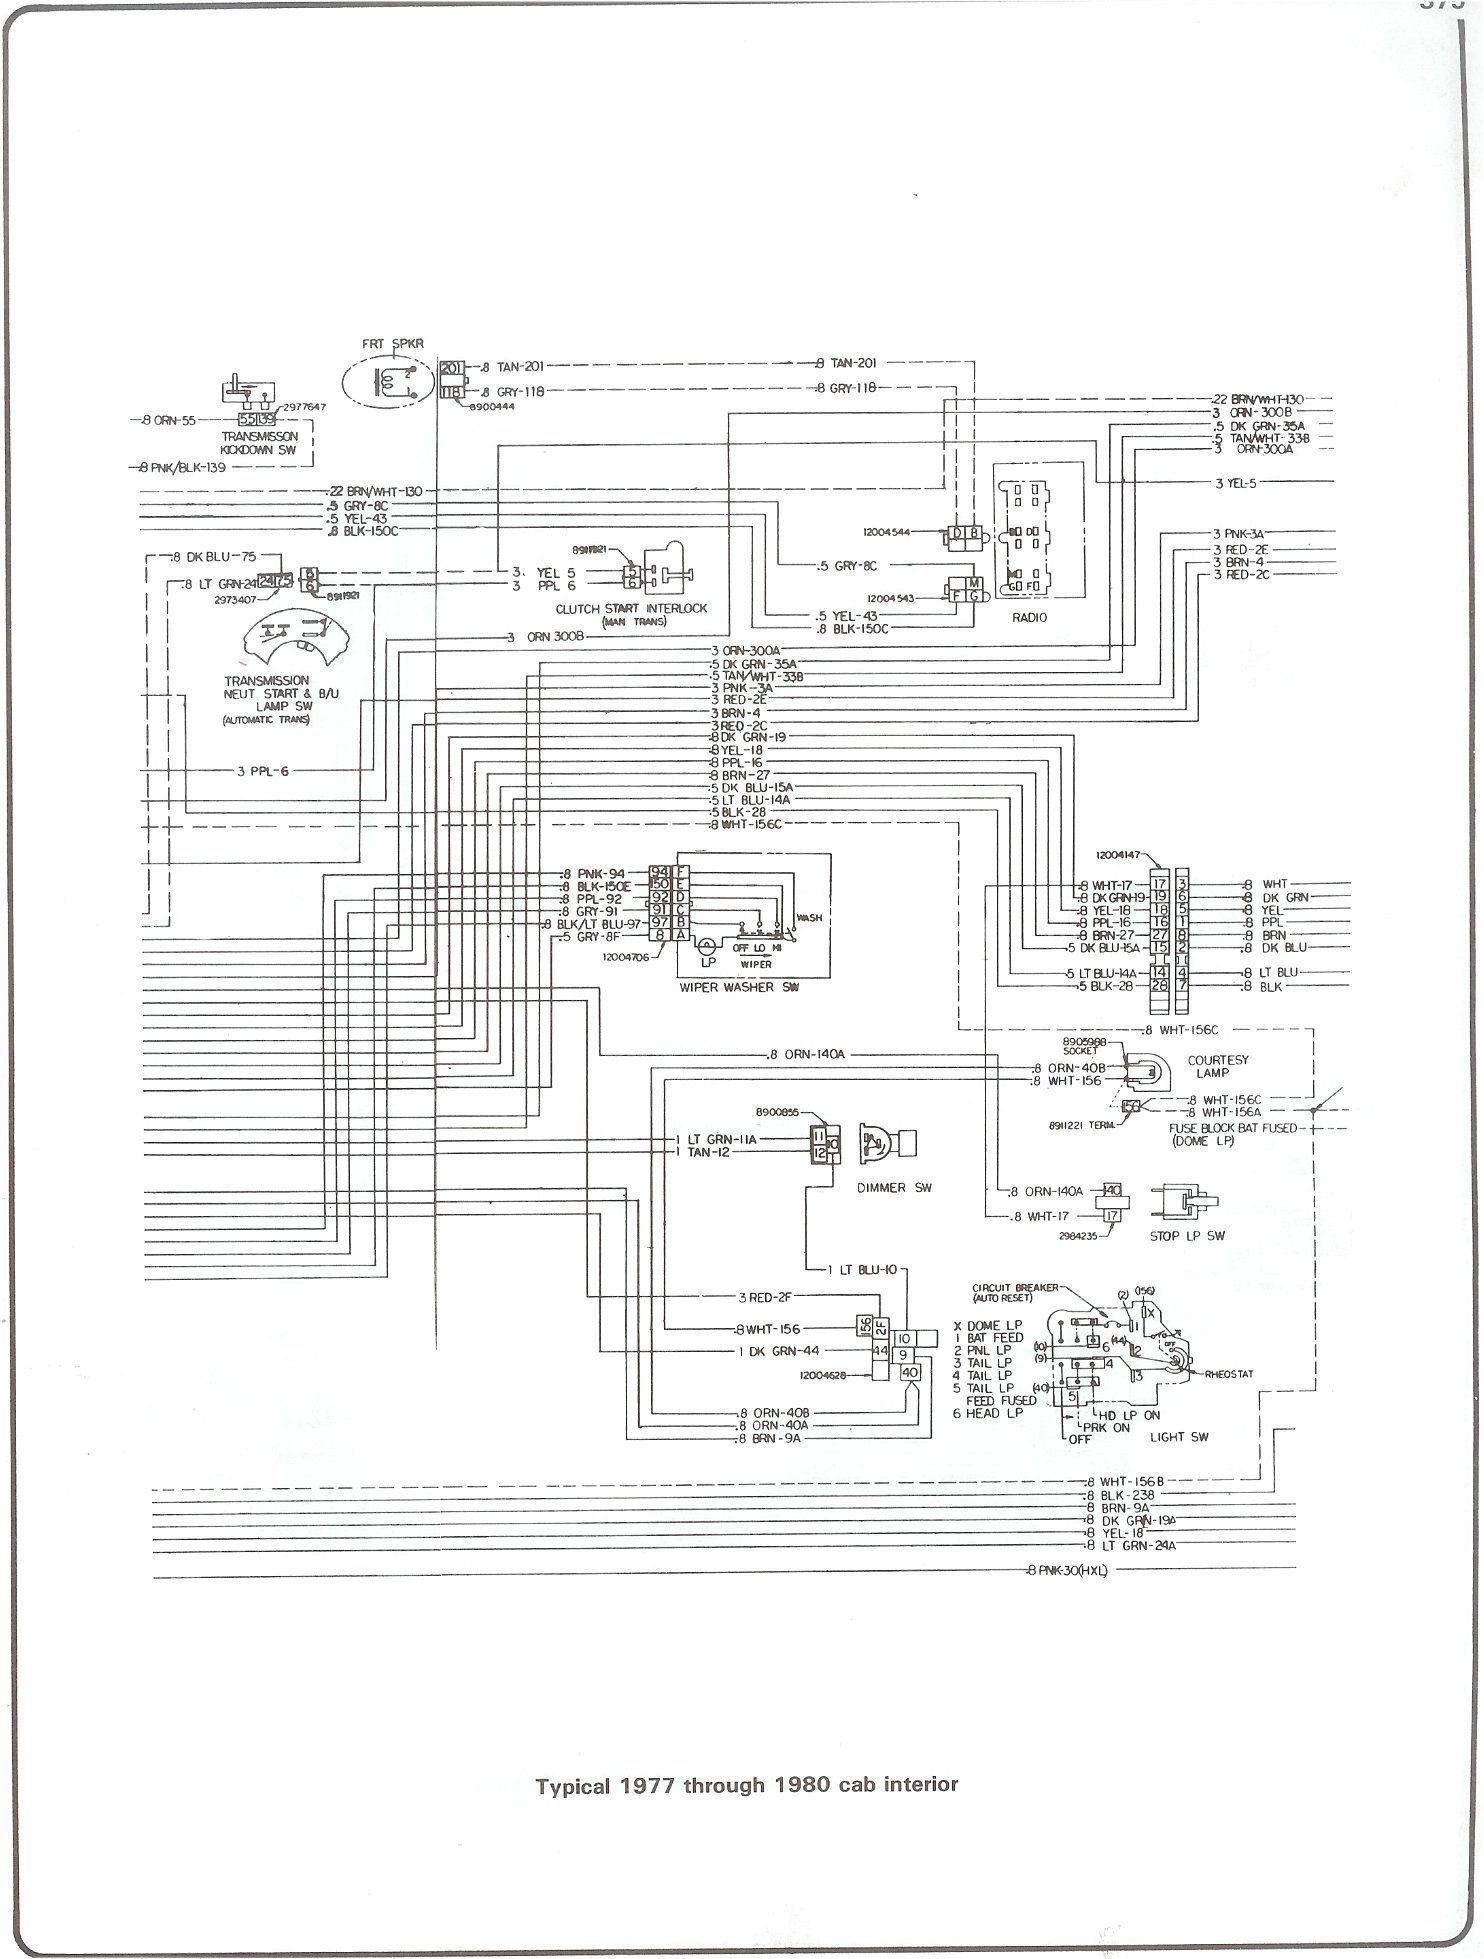 1979 F 100 Wiring Harness Library Diagram 150 Complete 73 87 Diagrams 1977 Ford F150 Radio F100